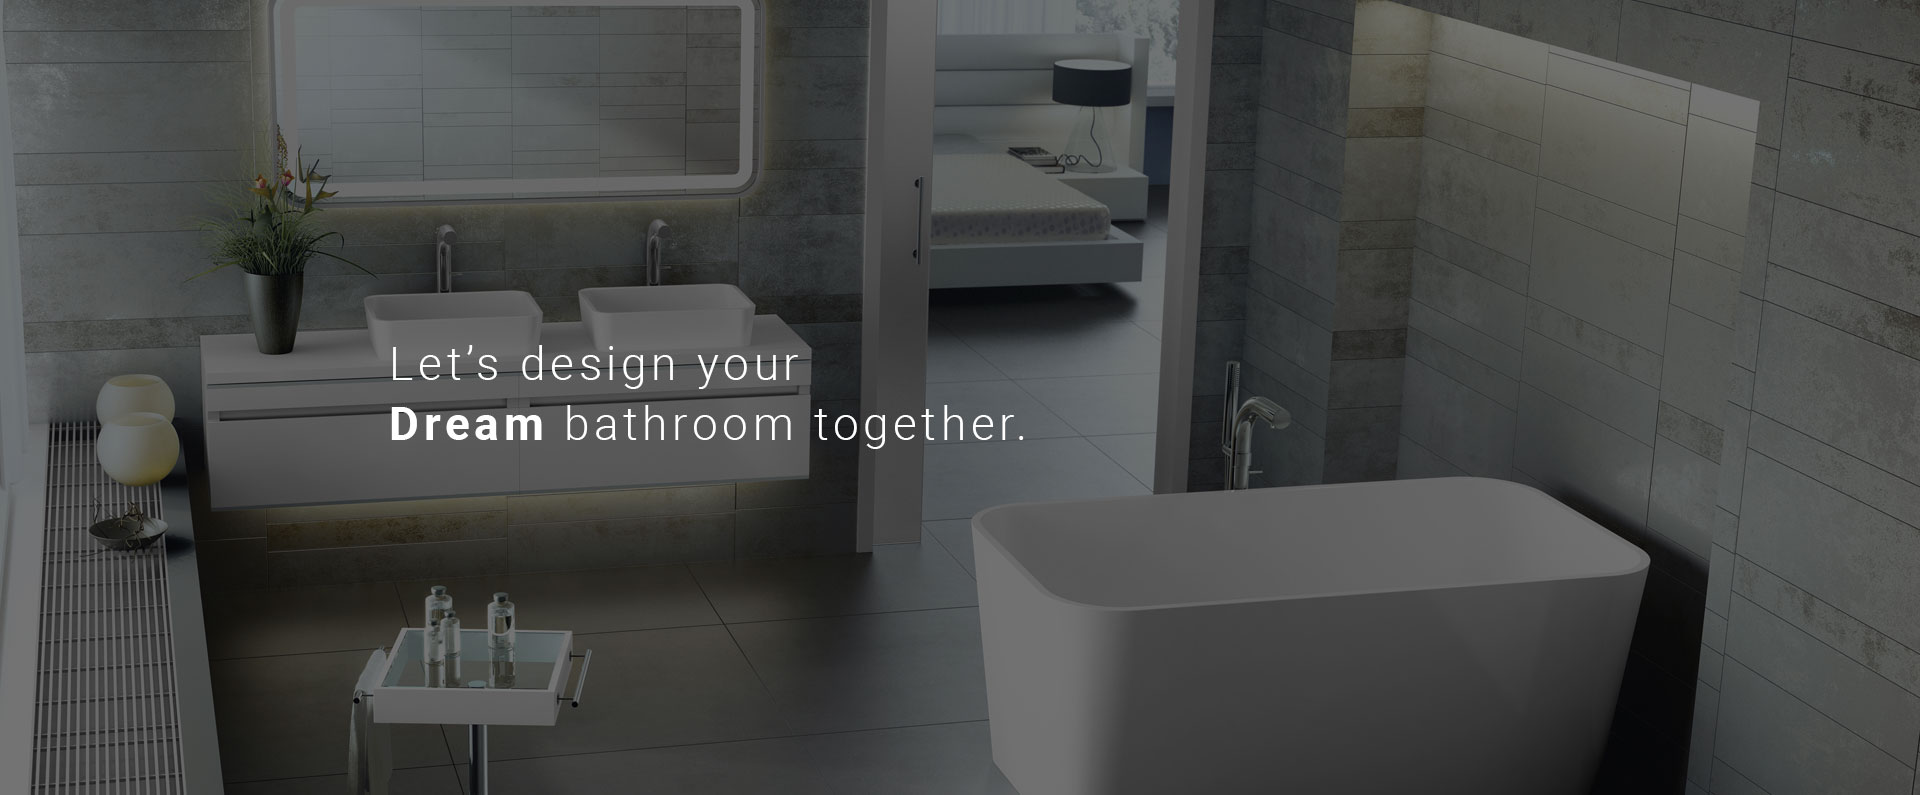 Continental Bathroom Supplies - Specialised in Taps, tiles and showers in Western Cape, Cape Town